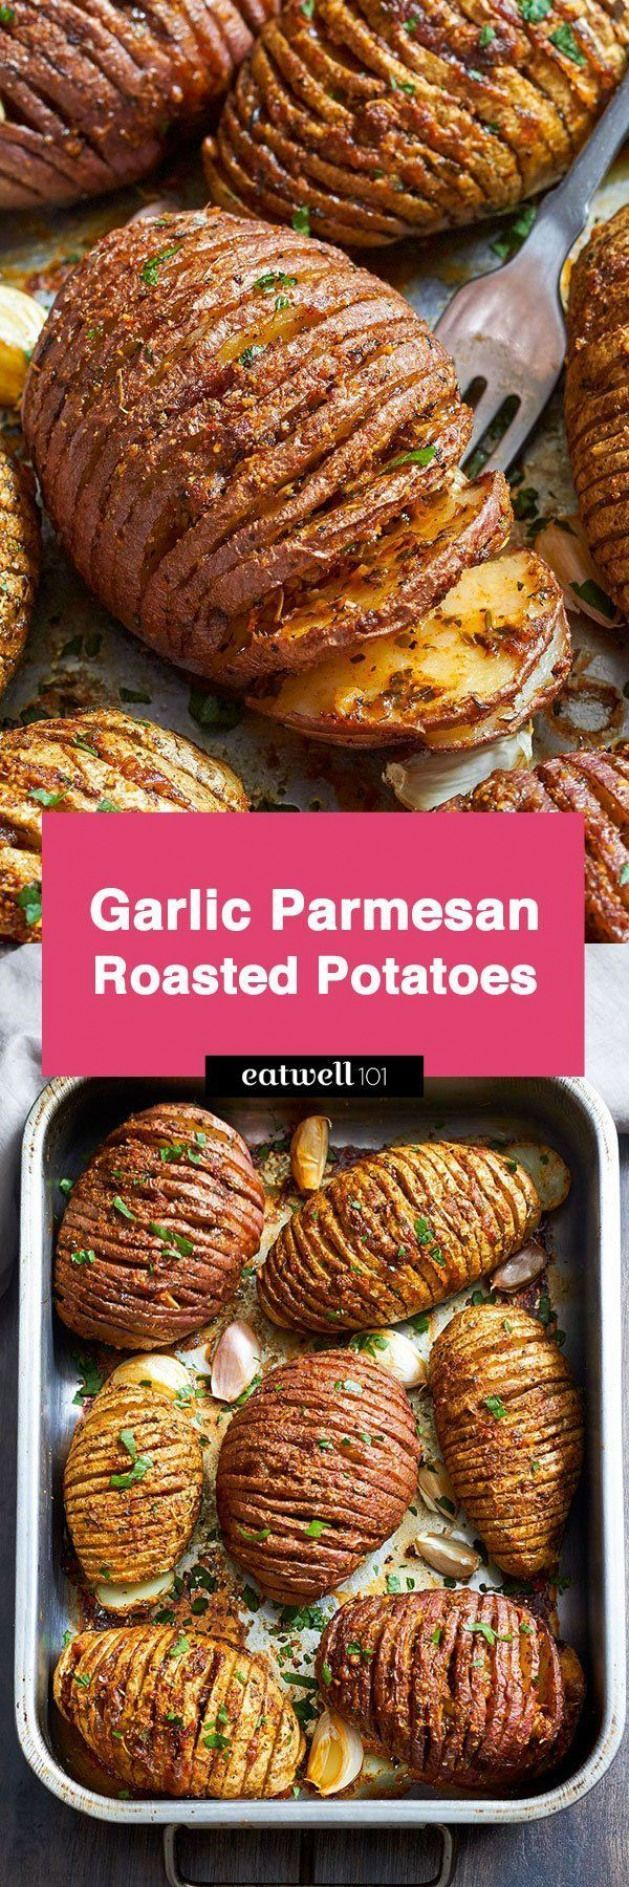 Try these Garlic Parmesan Butter RoastedPotatoes if youre looking for a striking side dish that wil